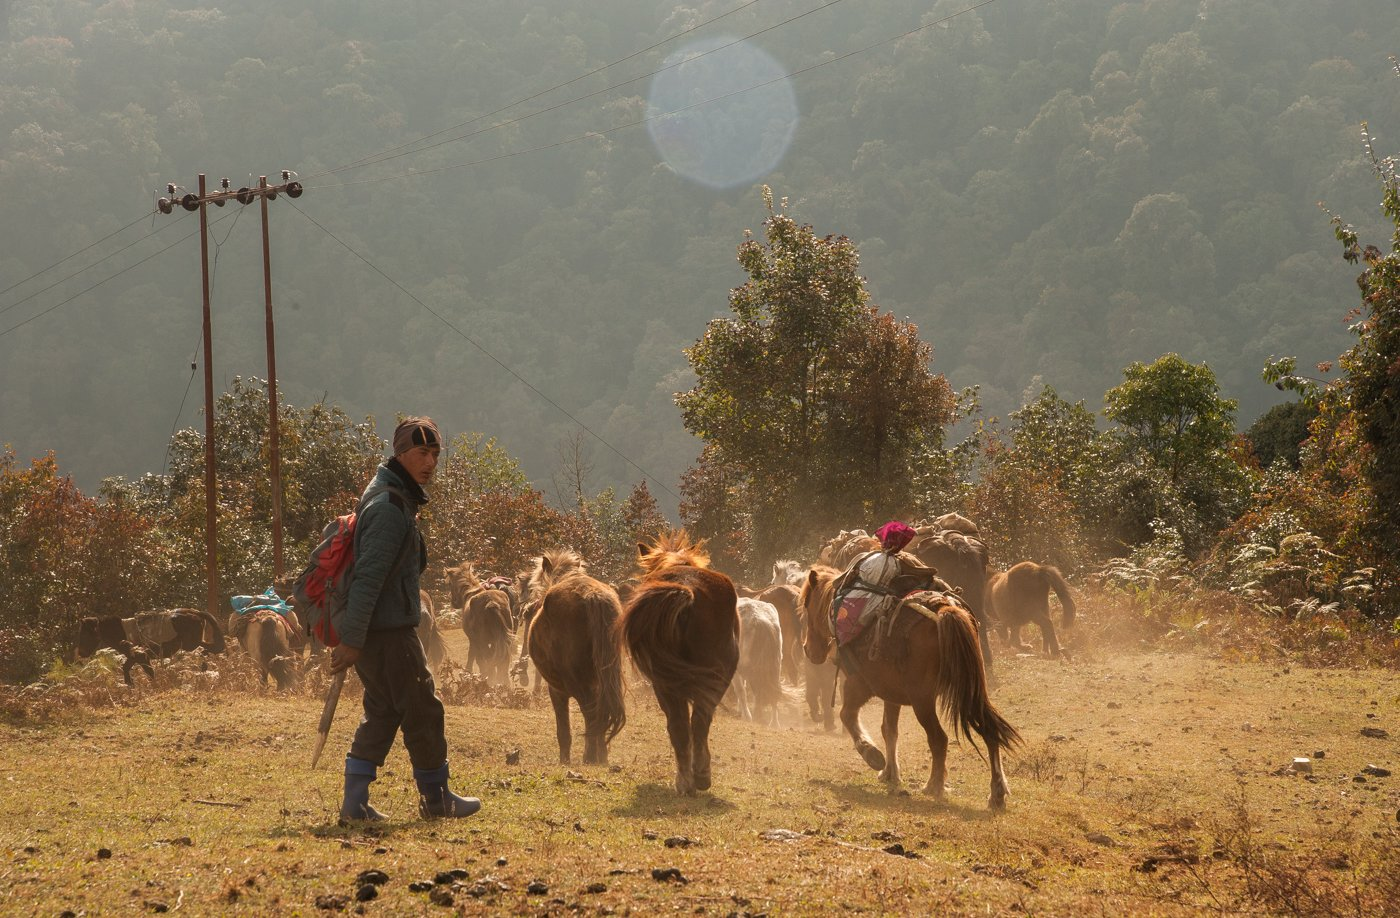 Brokpa herders move frequently, from higher altitudes to lower lands, and from the lowlands to the mountain ranges. They carry rations and other provisions. Migrating within their permanent settlements – locations fixed by the community – is a continual process. Credit: Ritayan Mukherjee